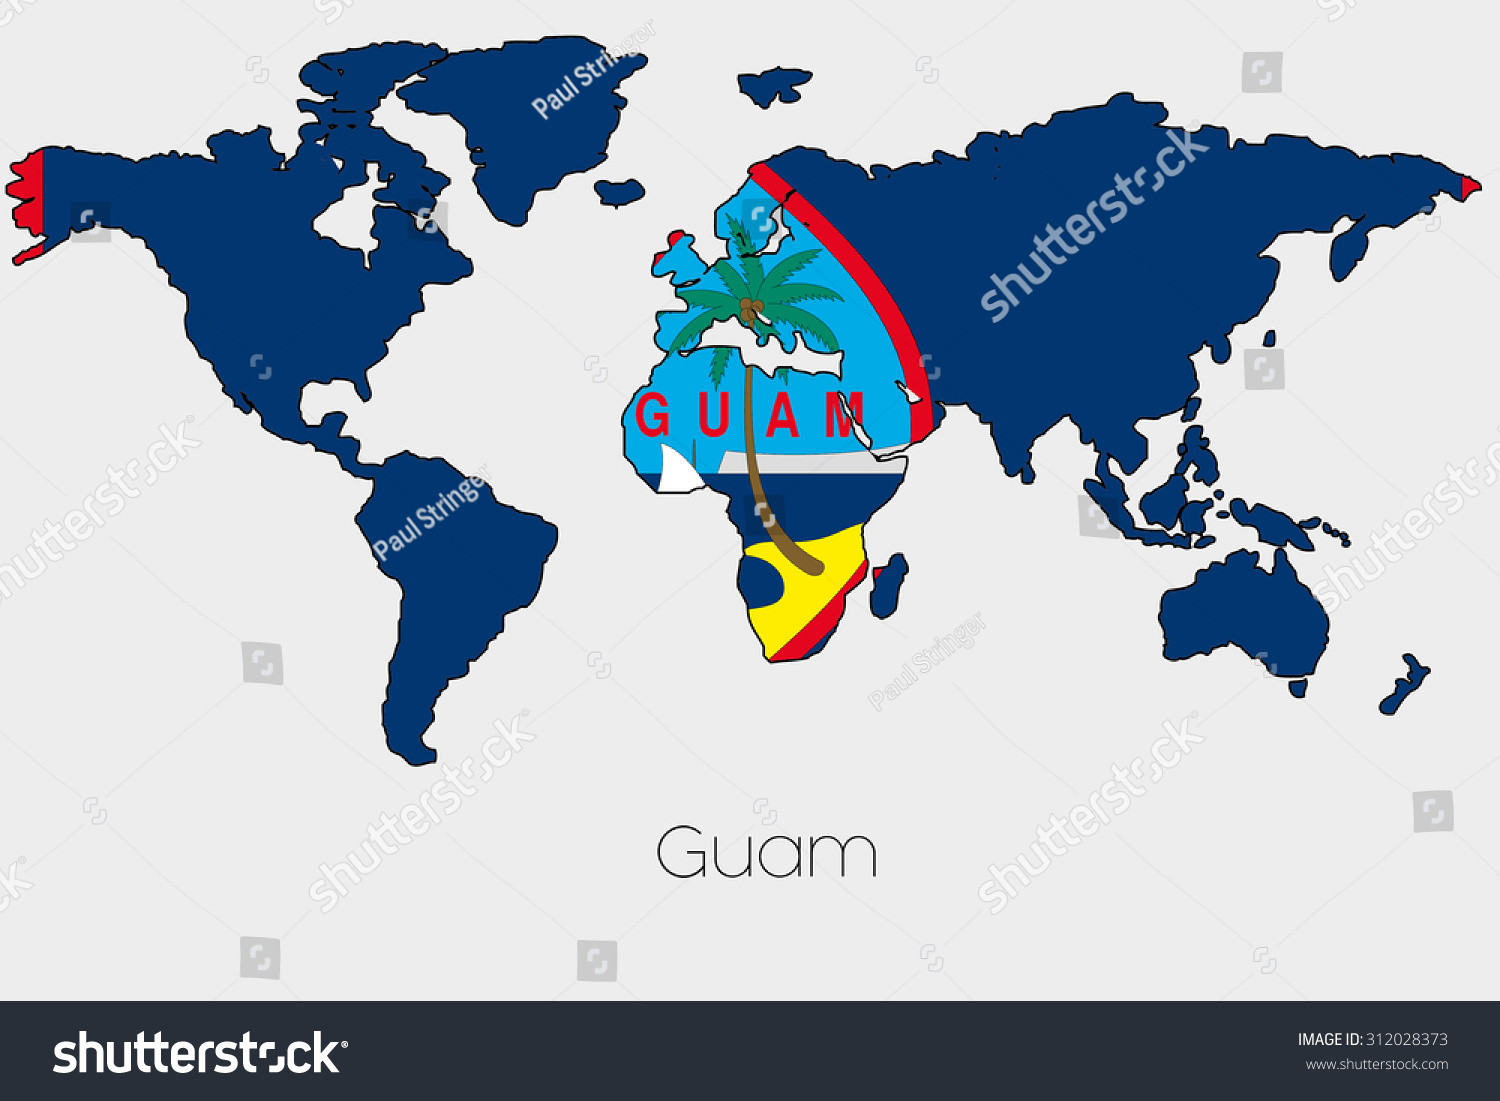 Flag illustration inside shape world map stock illustration a flag illustration inside the shape of a world map of the country of guam gumiabroncs Choice Image